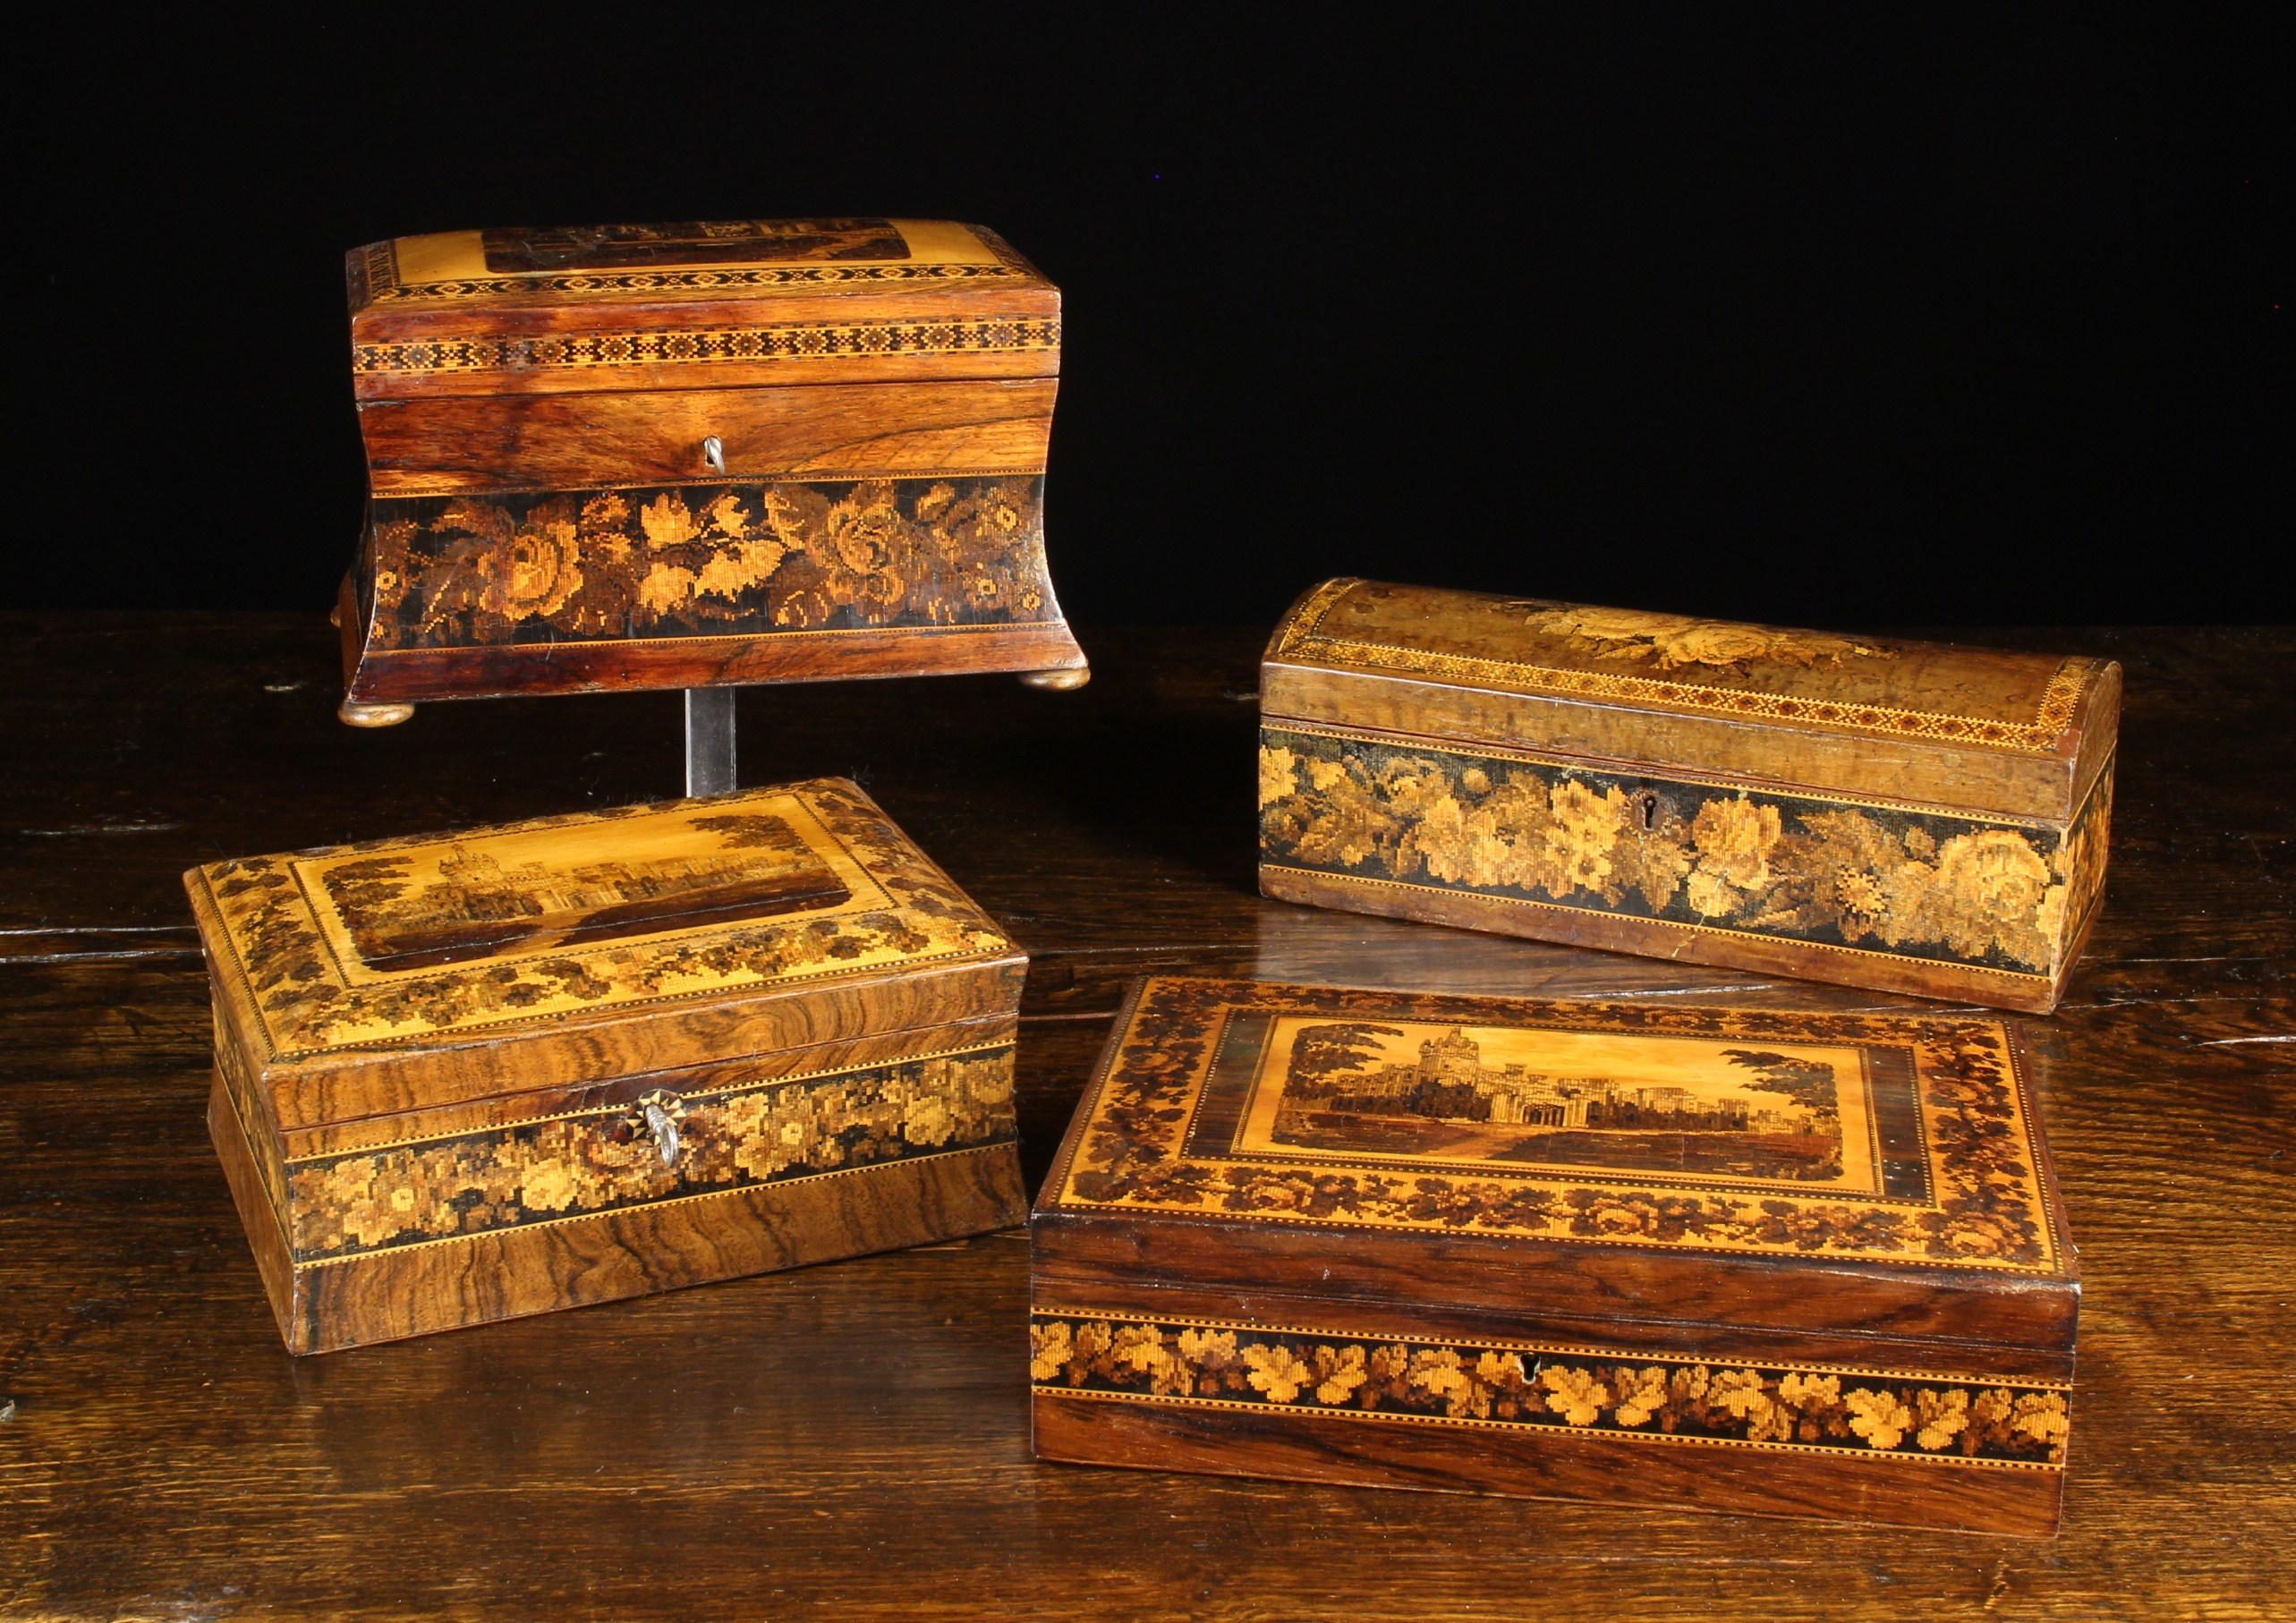 A Group of Four Victorian Tunbridge Ware Boxes intricately inlaid with micro-mosaic wooden tesserae